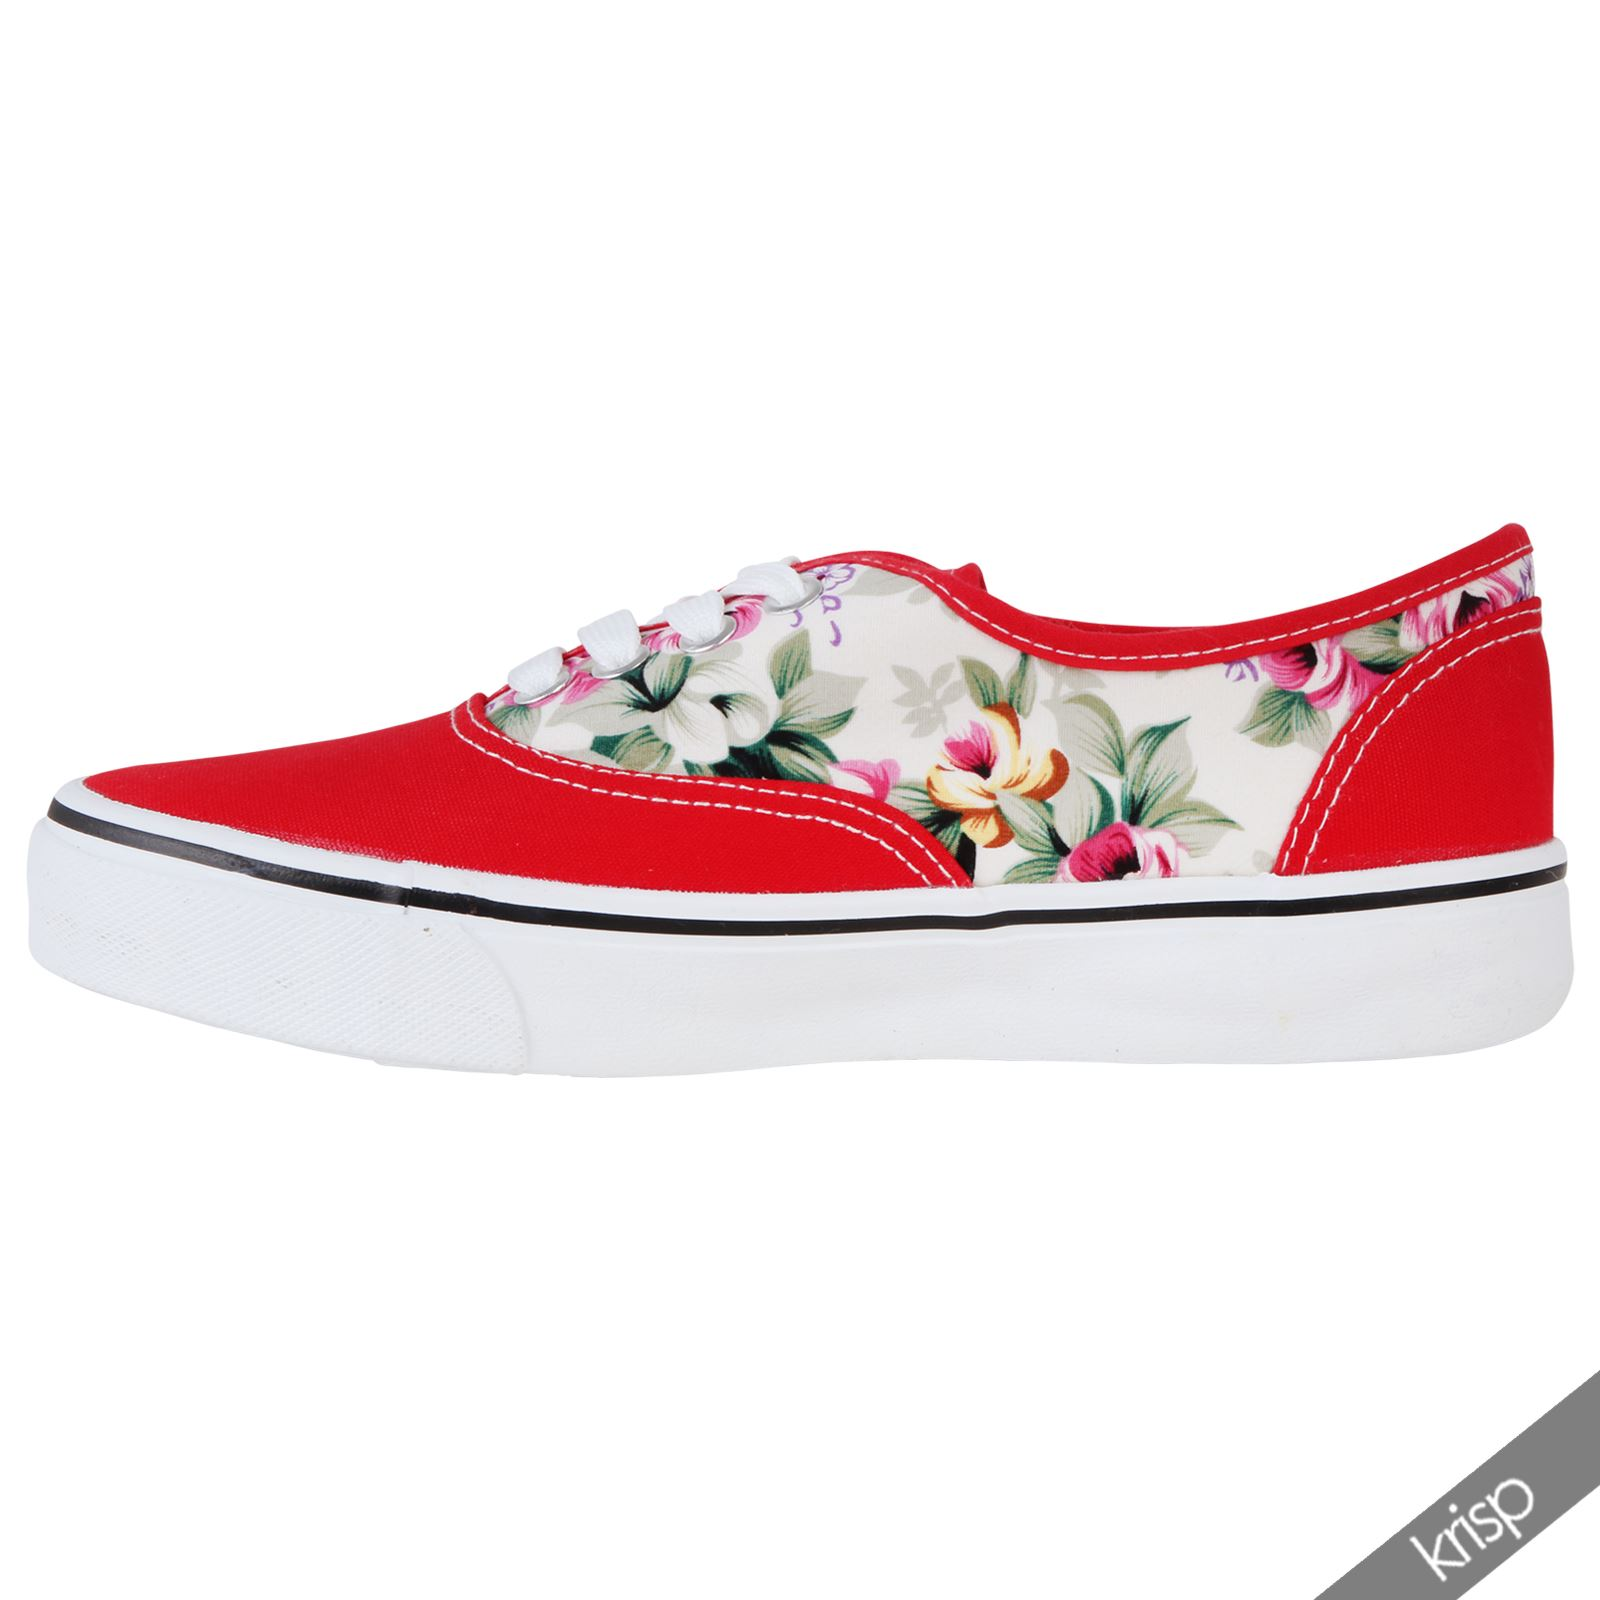 2306e71bcc463 Women Ladies Floral Glitter Slip On Plimsolls Trainers Sneakers ...